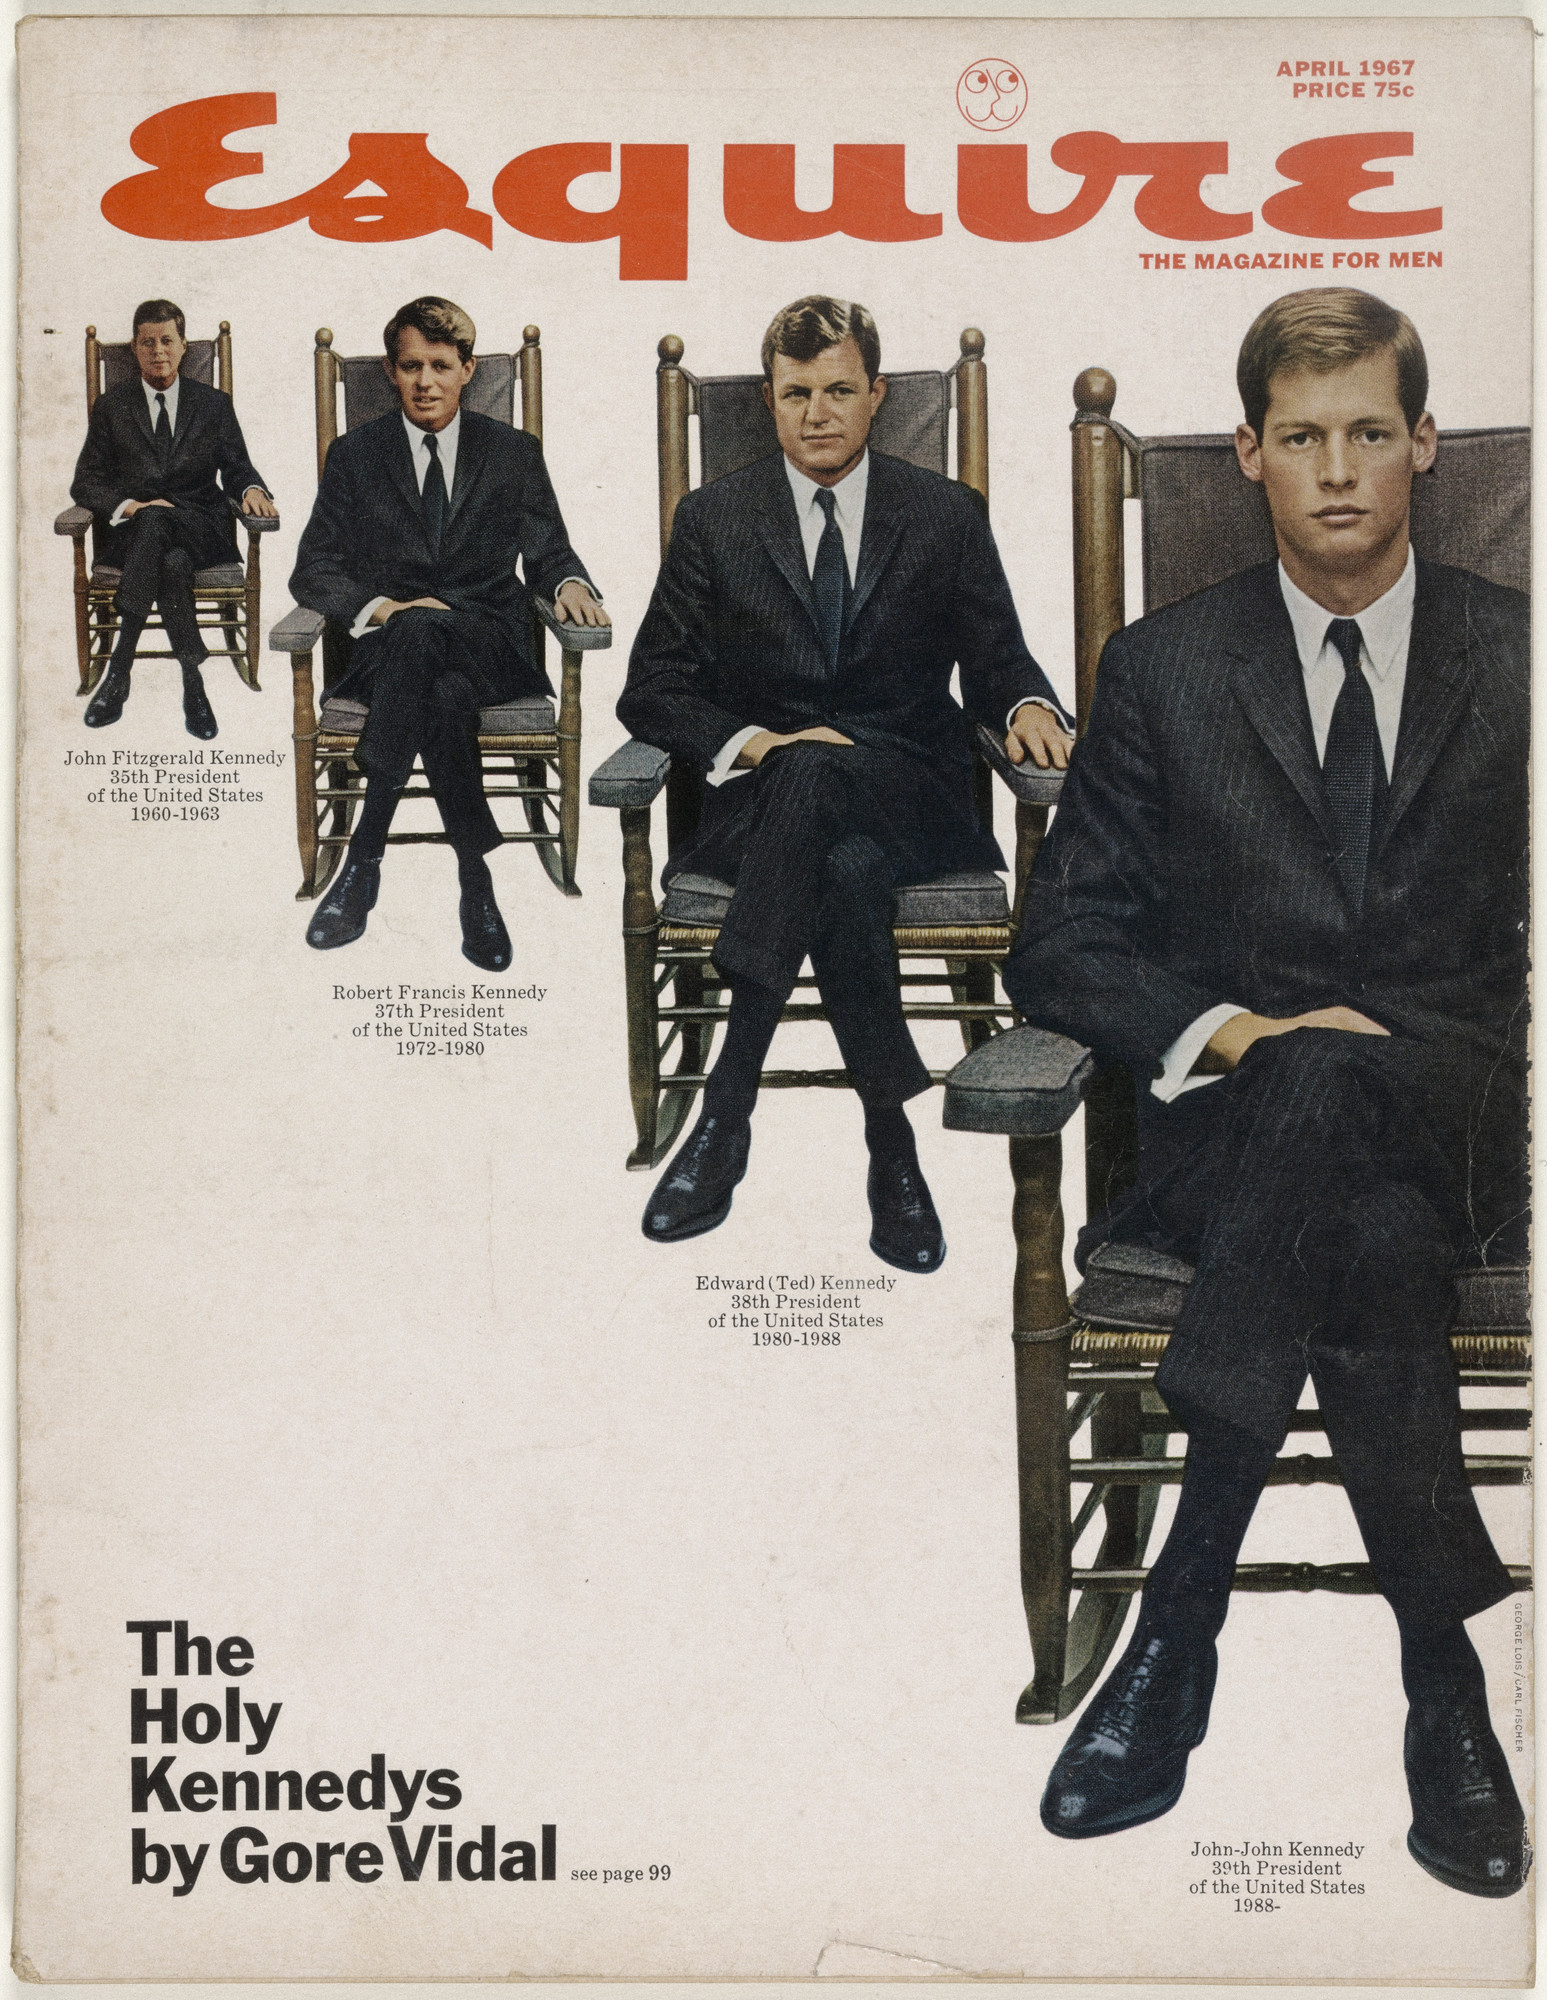 George Lois. Esquire Magazine, Issue no. 401, April 1967,. 1967